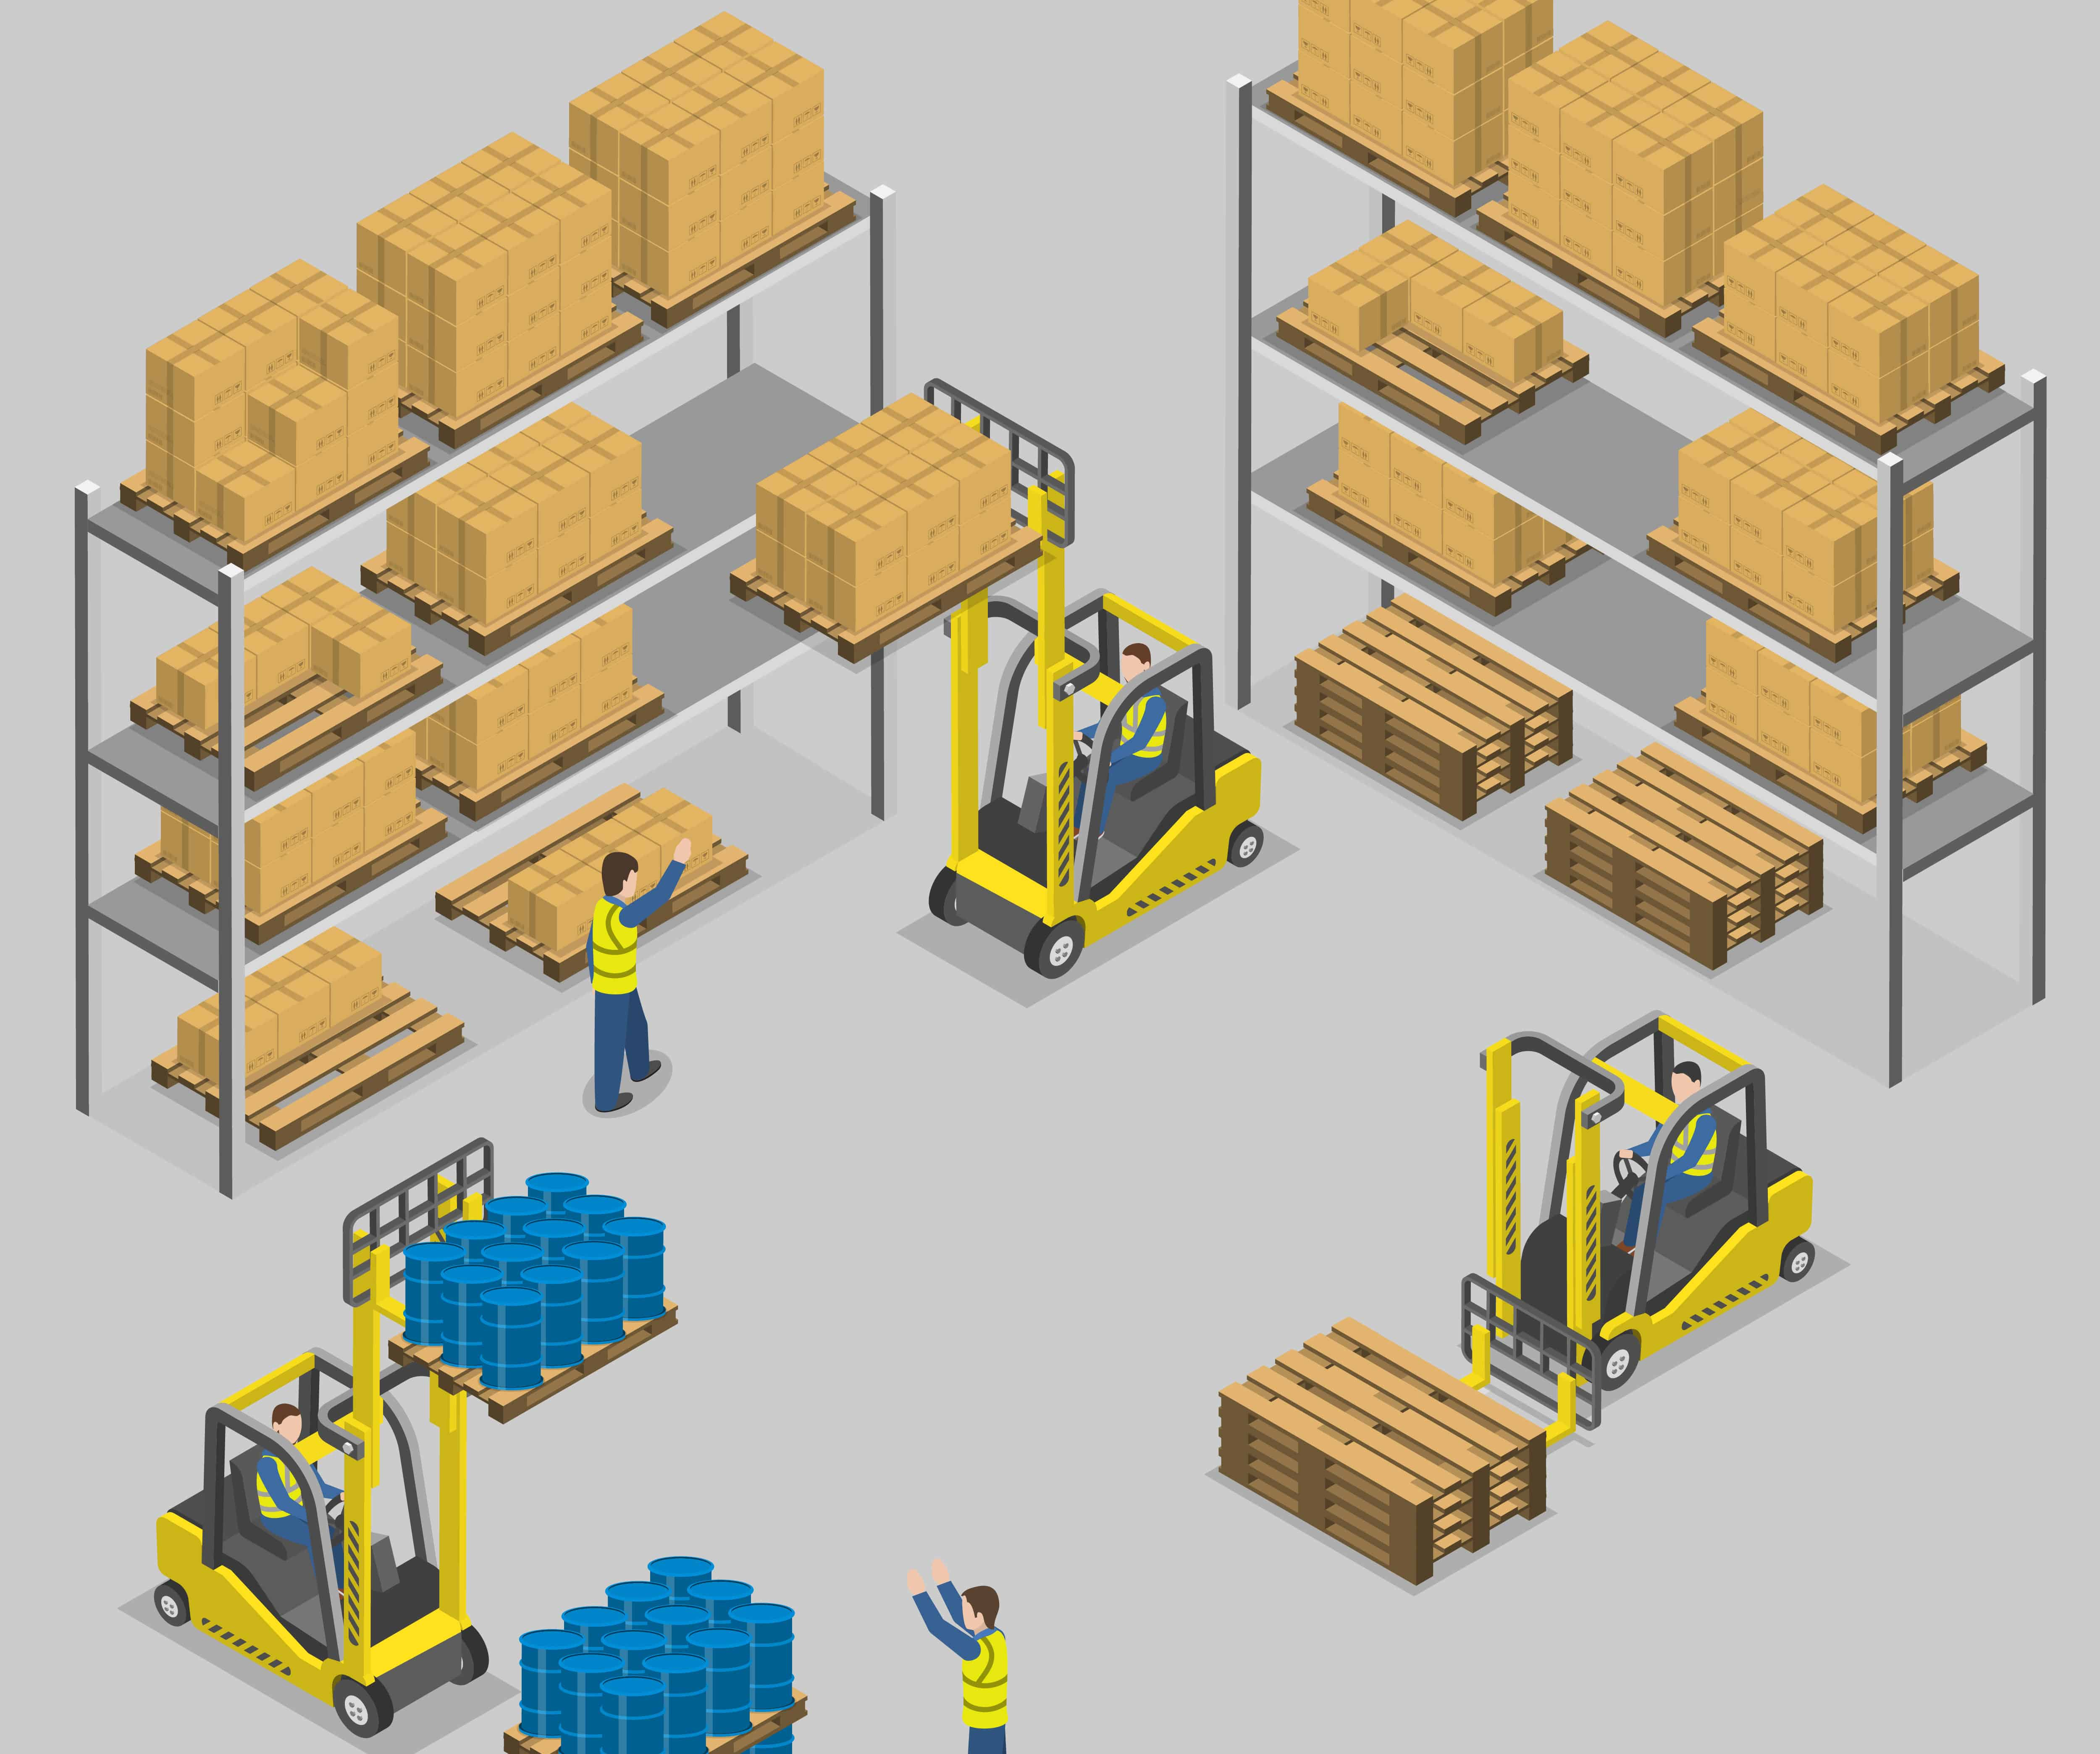 fulfillment center with forklifts